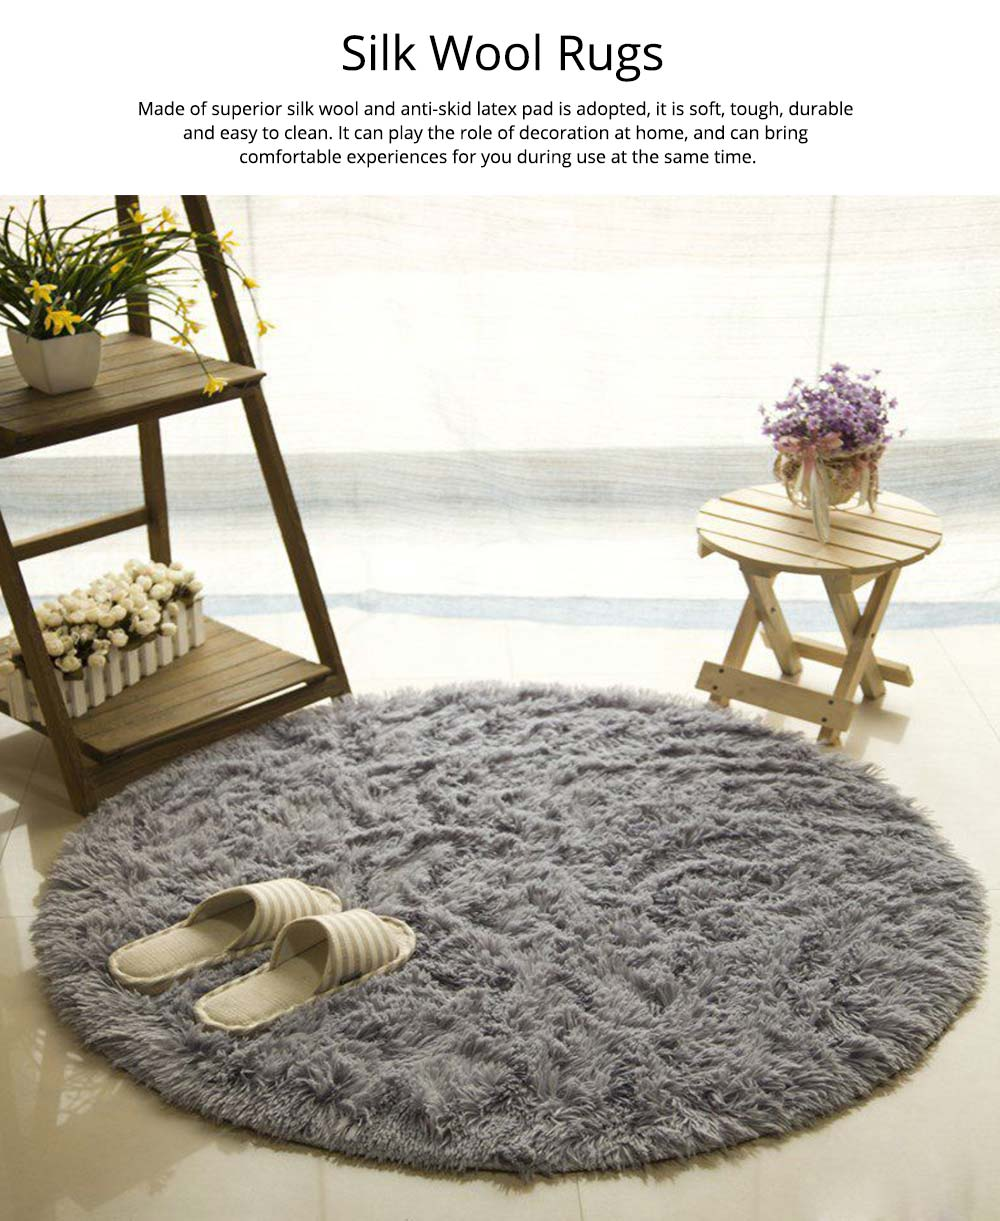 Silk Wool Rugs, Shaggy Fluffy Rugs, Non-slip Round Carpet for Living Room, Rugs for Bedroom 0